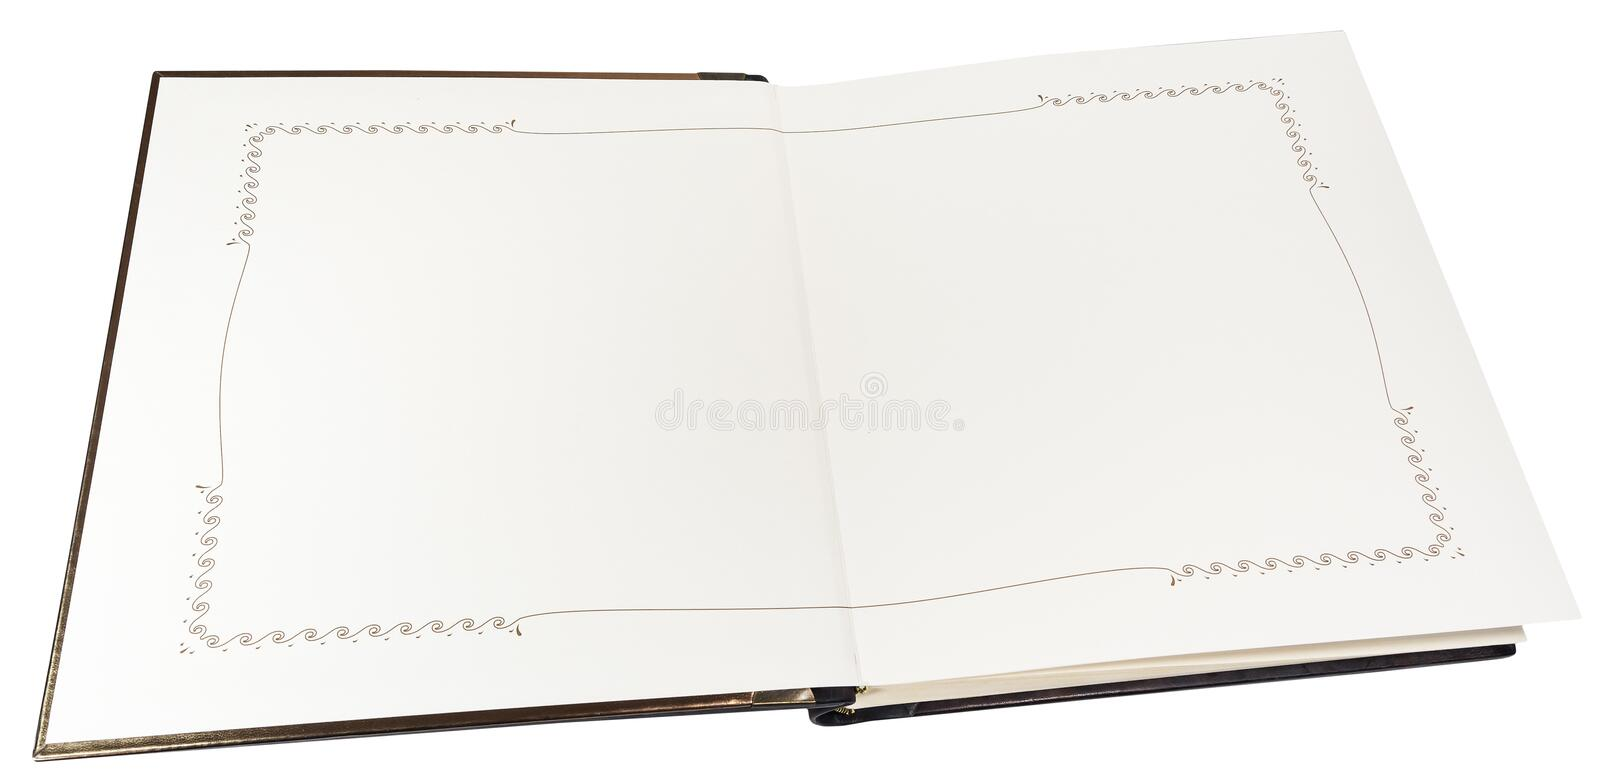 Opened book with blank pages on a white background. Isolated. Opened photo book with blank pages on a white background royalty free stock photos